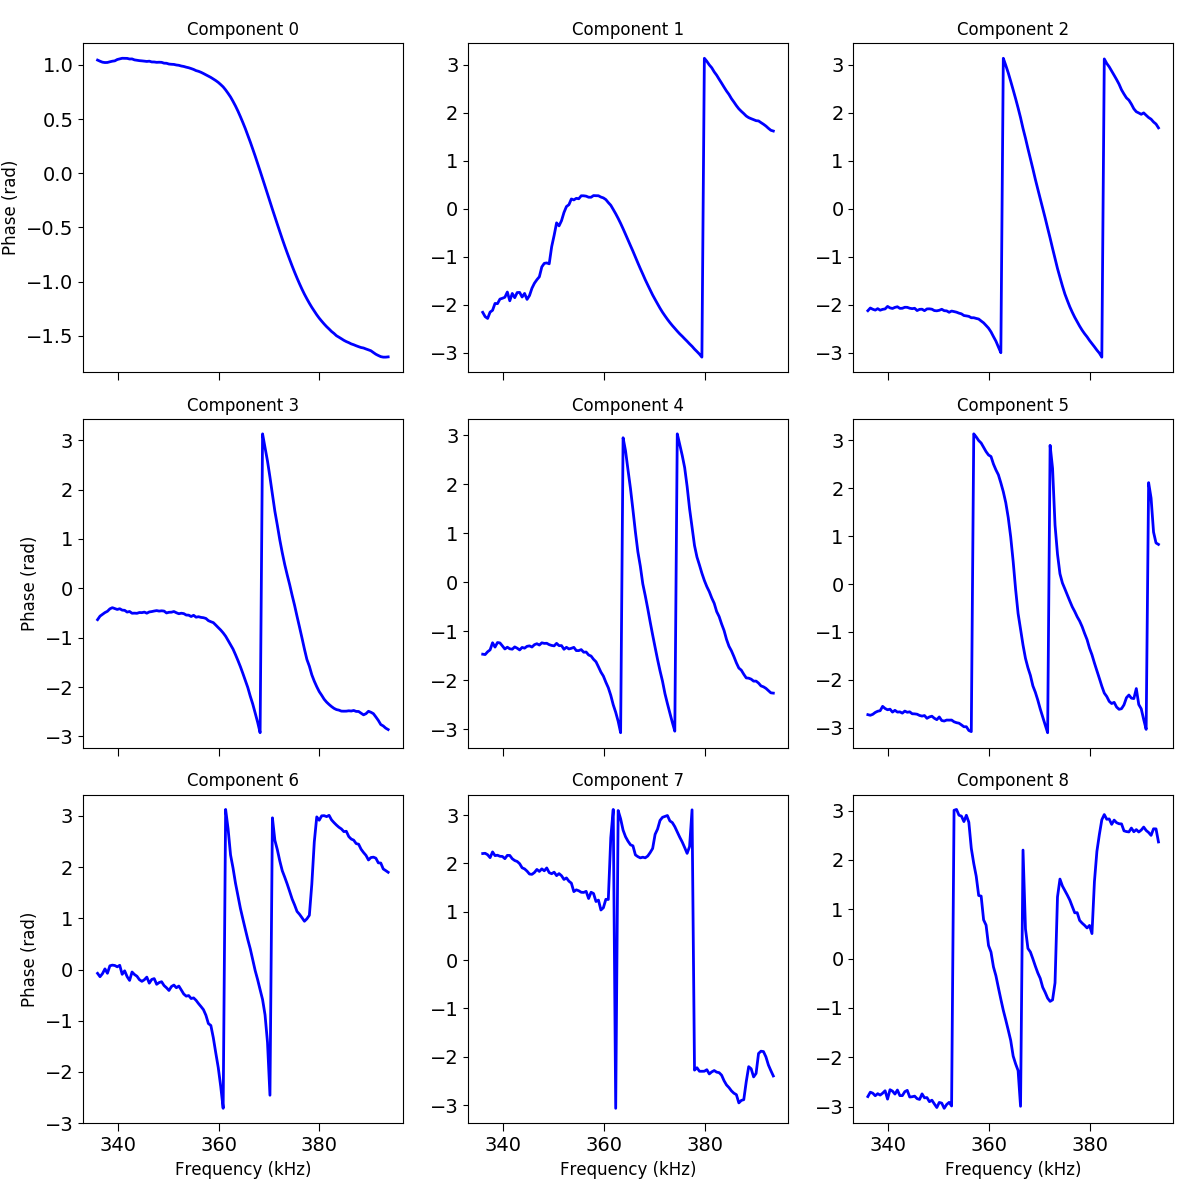 docs/auto_examples/data_analysis/images/sphx_glr_plot_spectral_unmixing_004.png